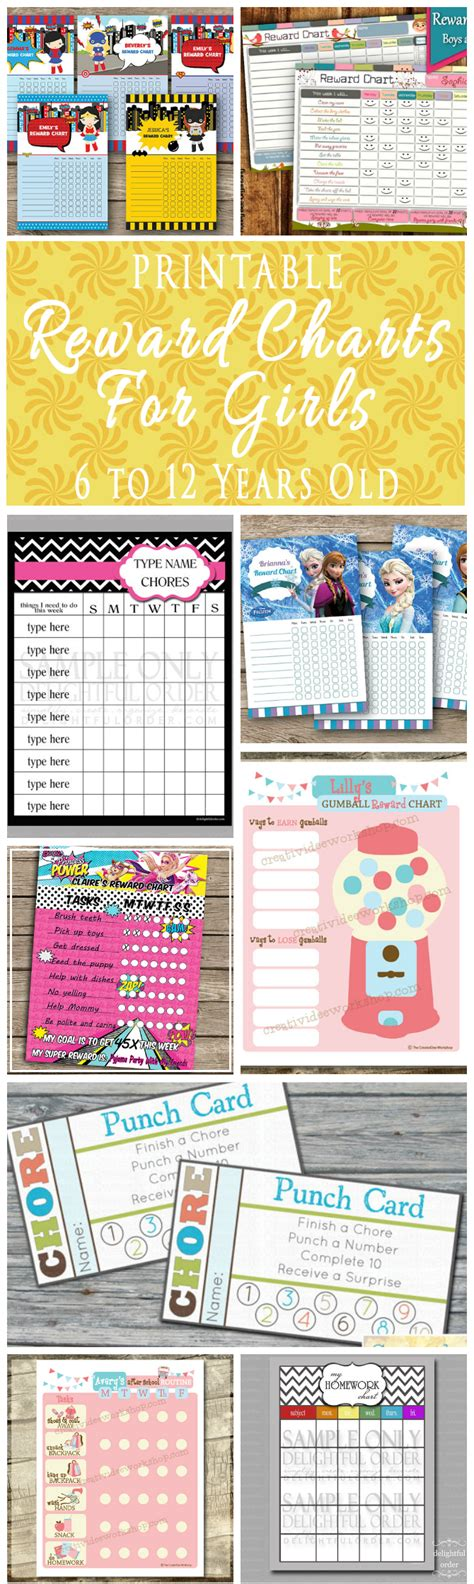 printable reward charts for kids 6 to 12 years old printable printable reward charts for kids 6 to 12 years old omg